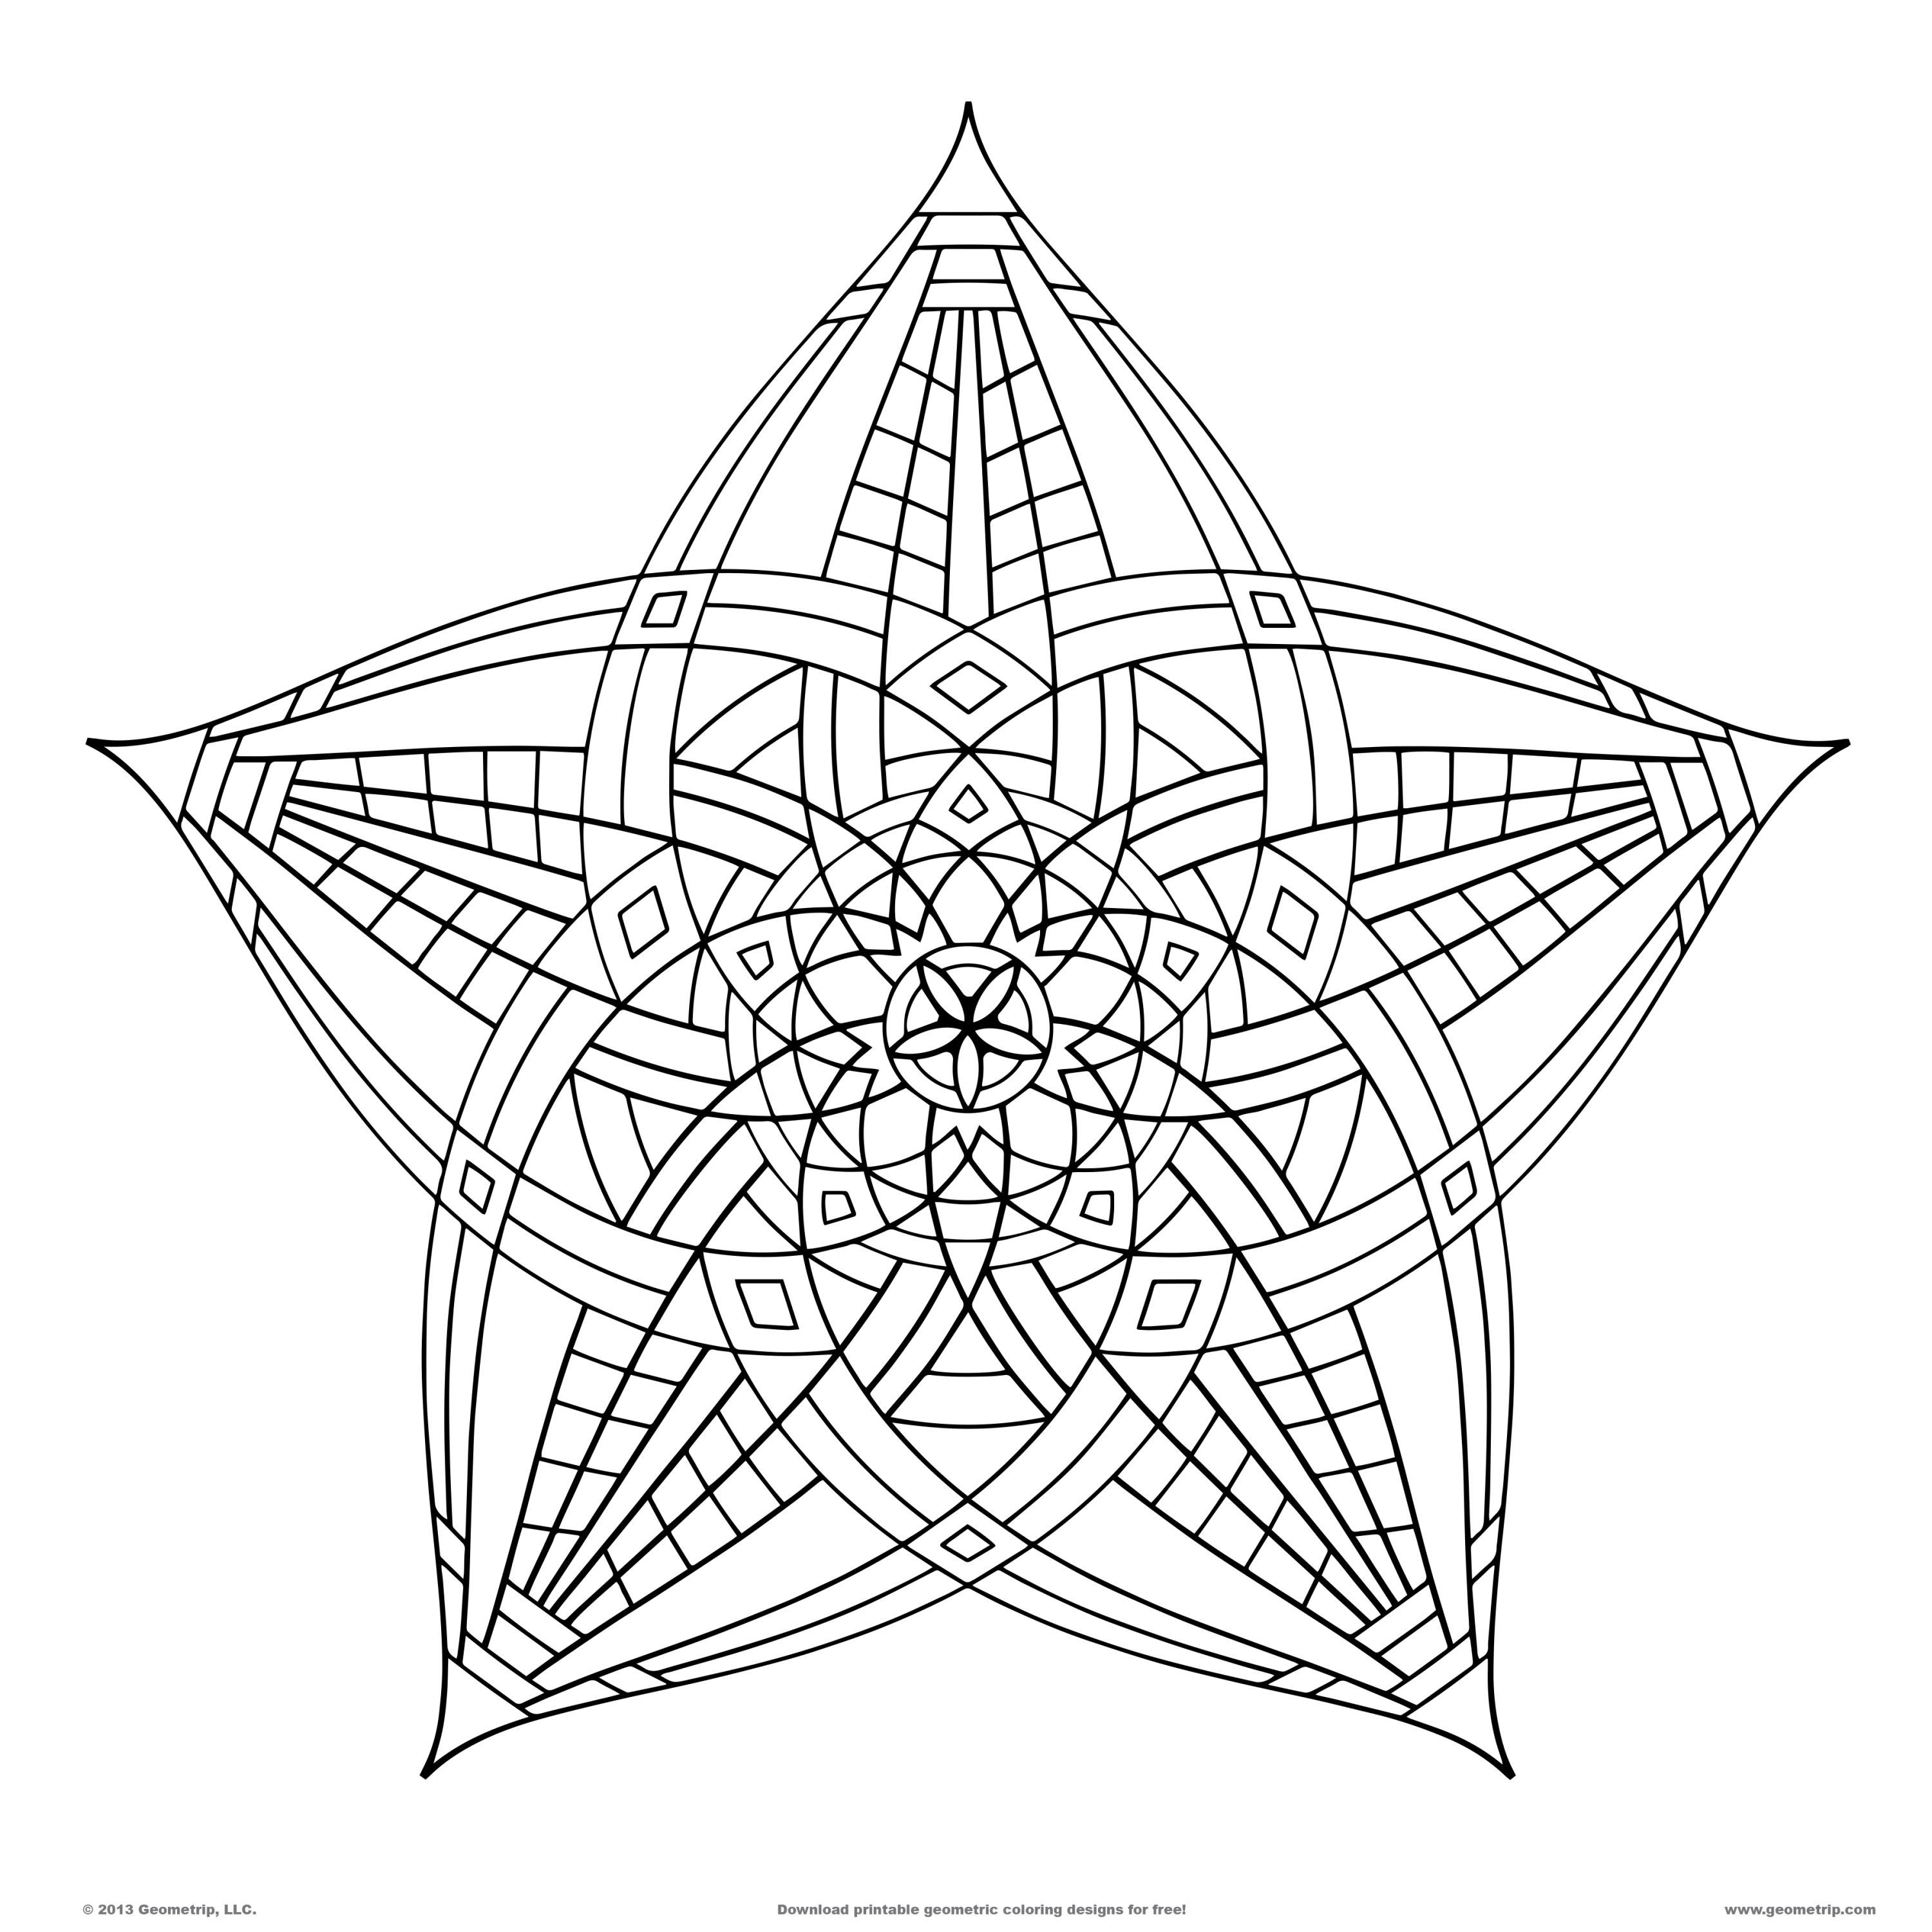 3000x3000 Geometric Shapes To Color Free Free Coloring Sheets